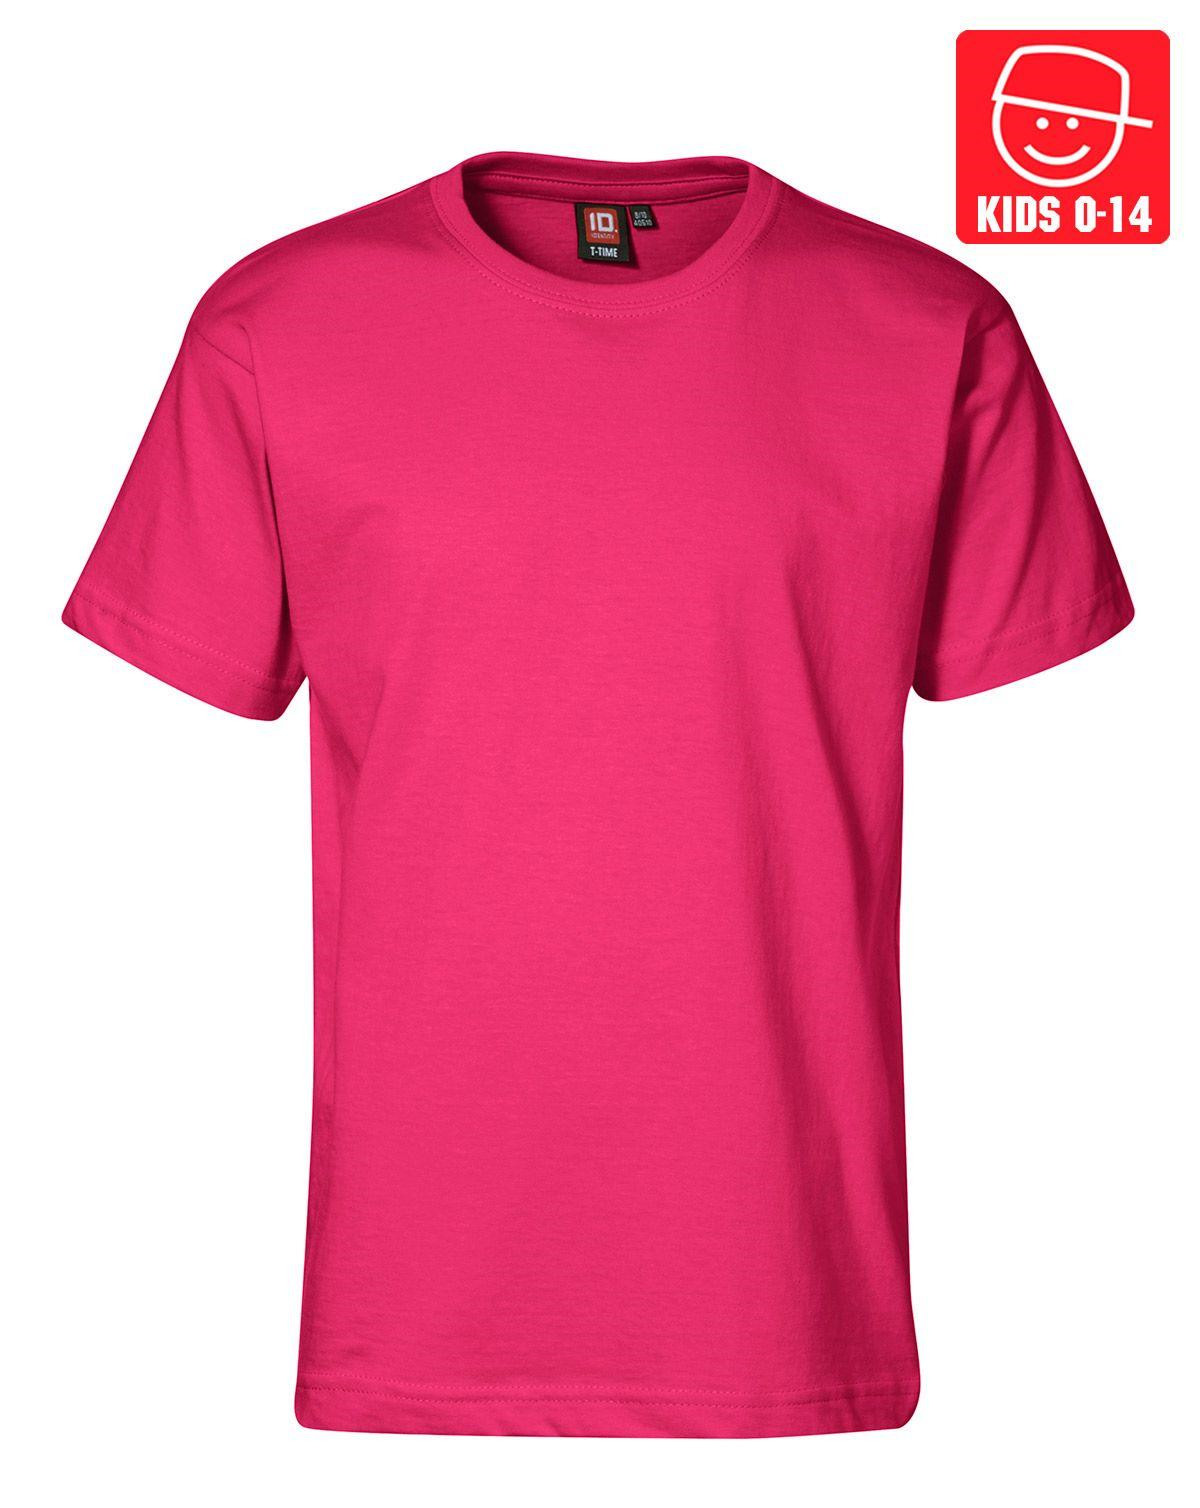 Image of   ID T-TIME T-shirt (Pink, 152)